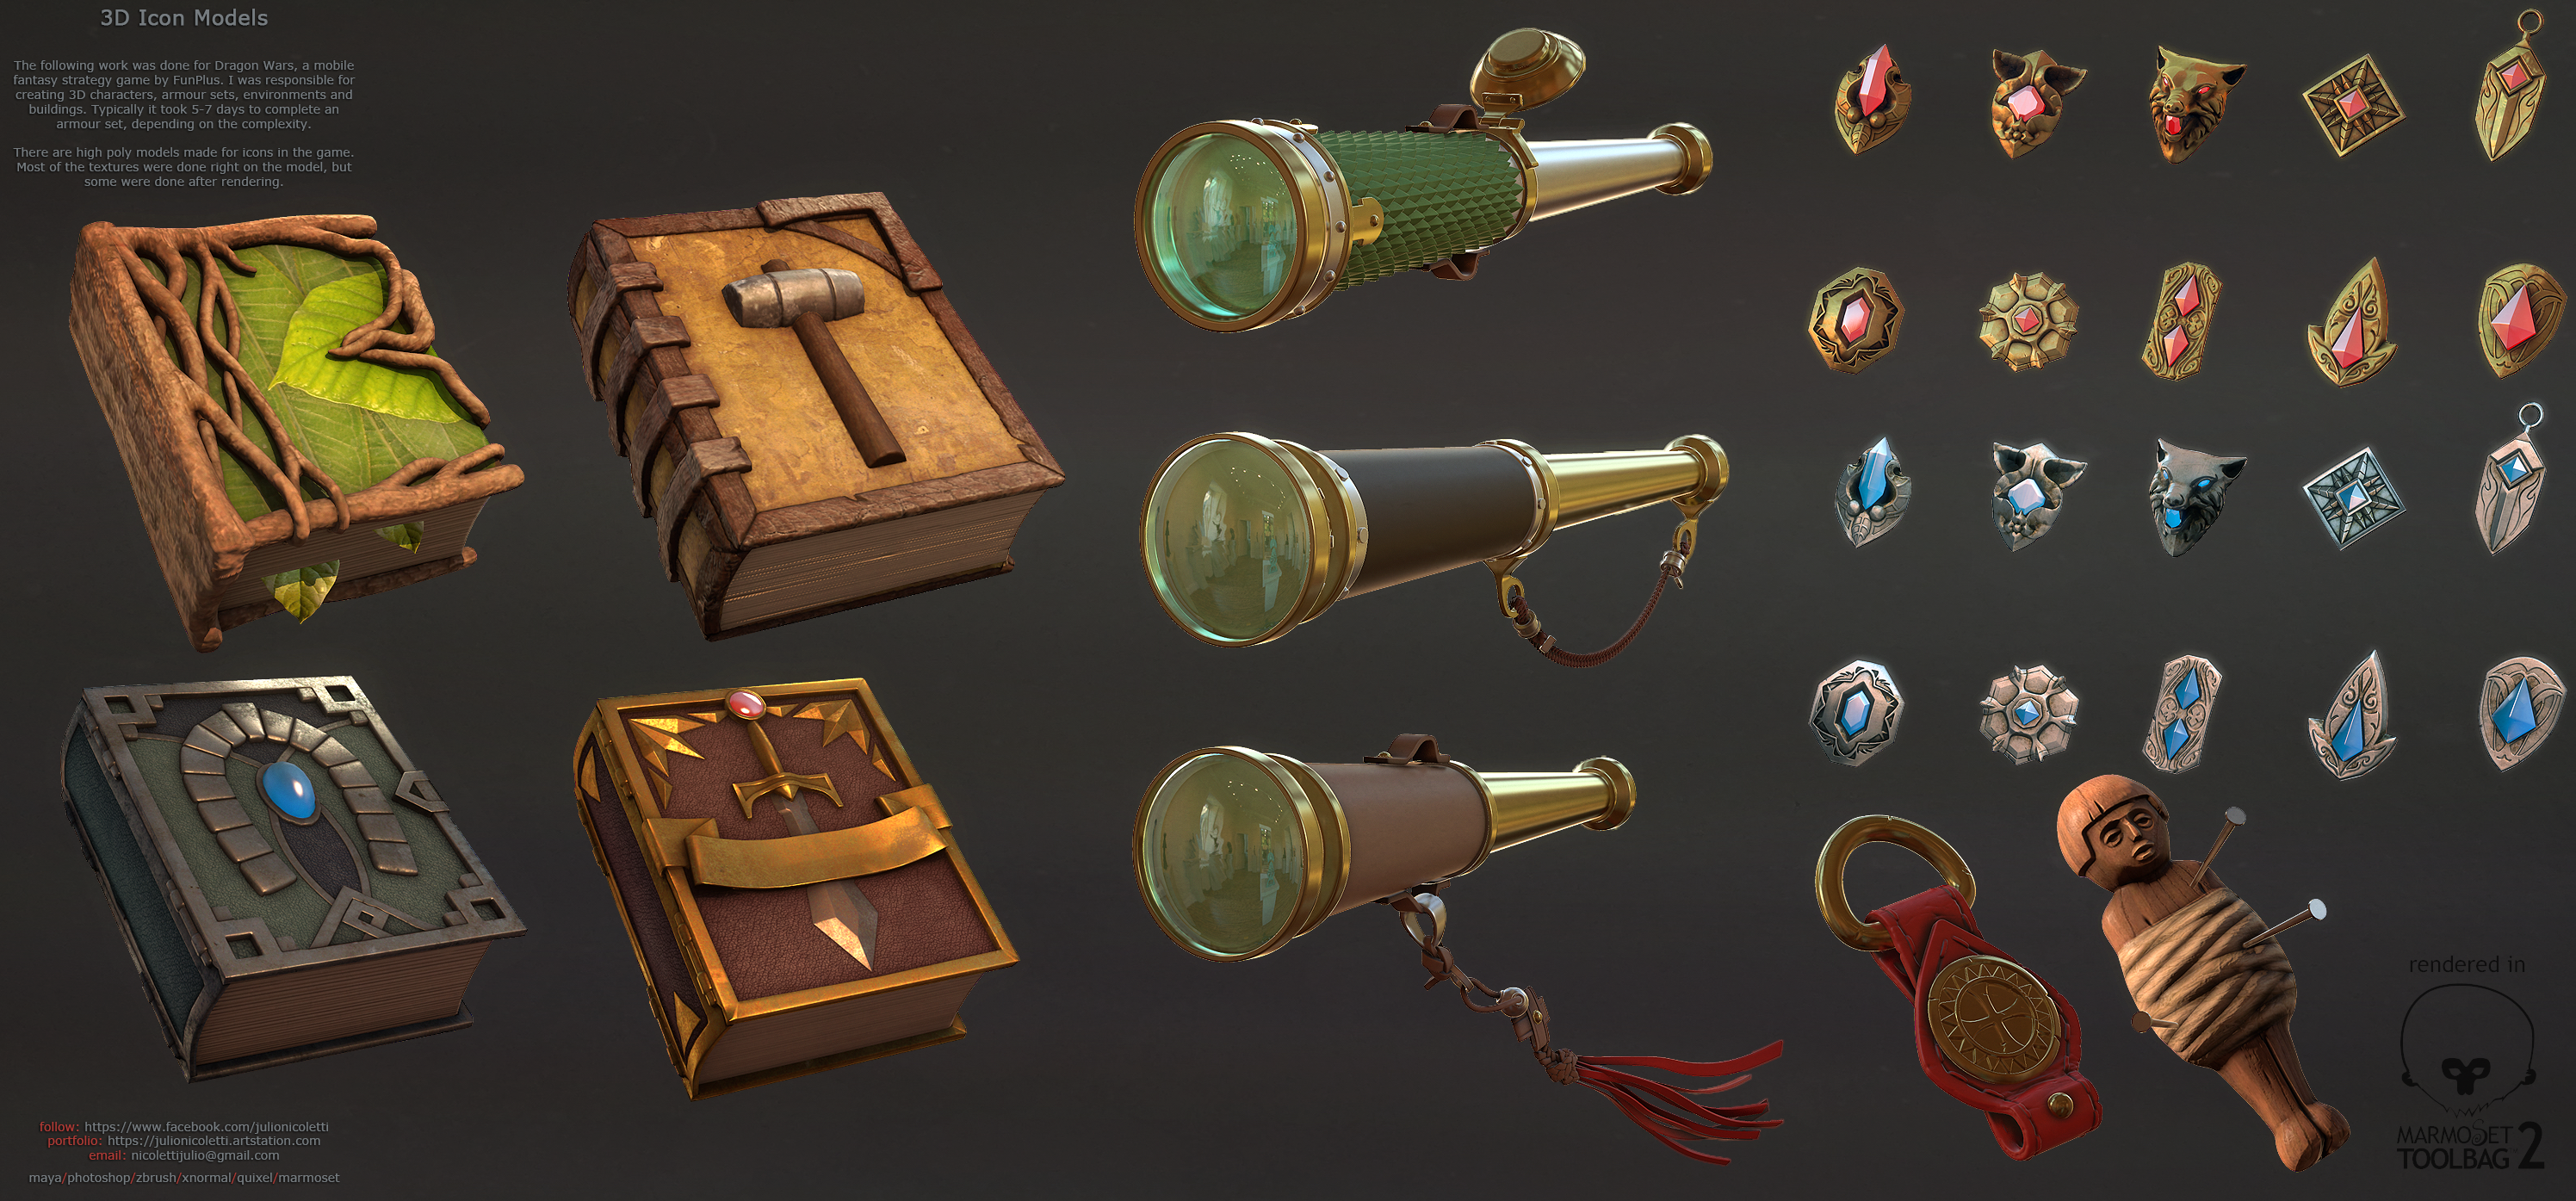 3d_icon_models_by_julionicoletti-d942ahv.png